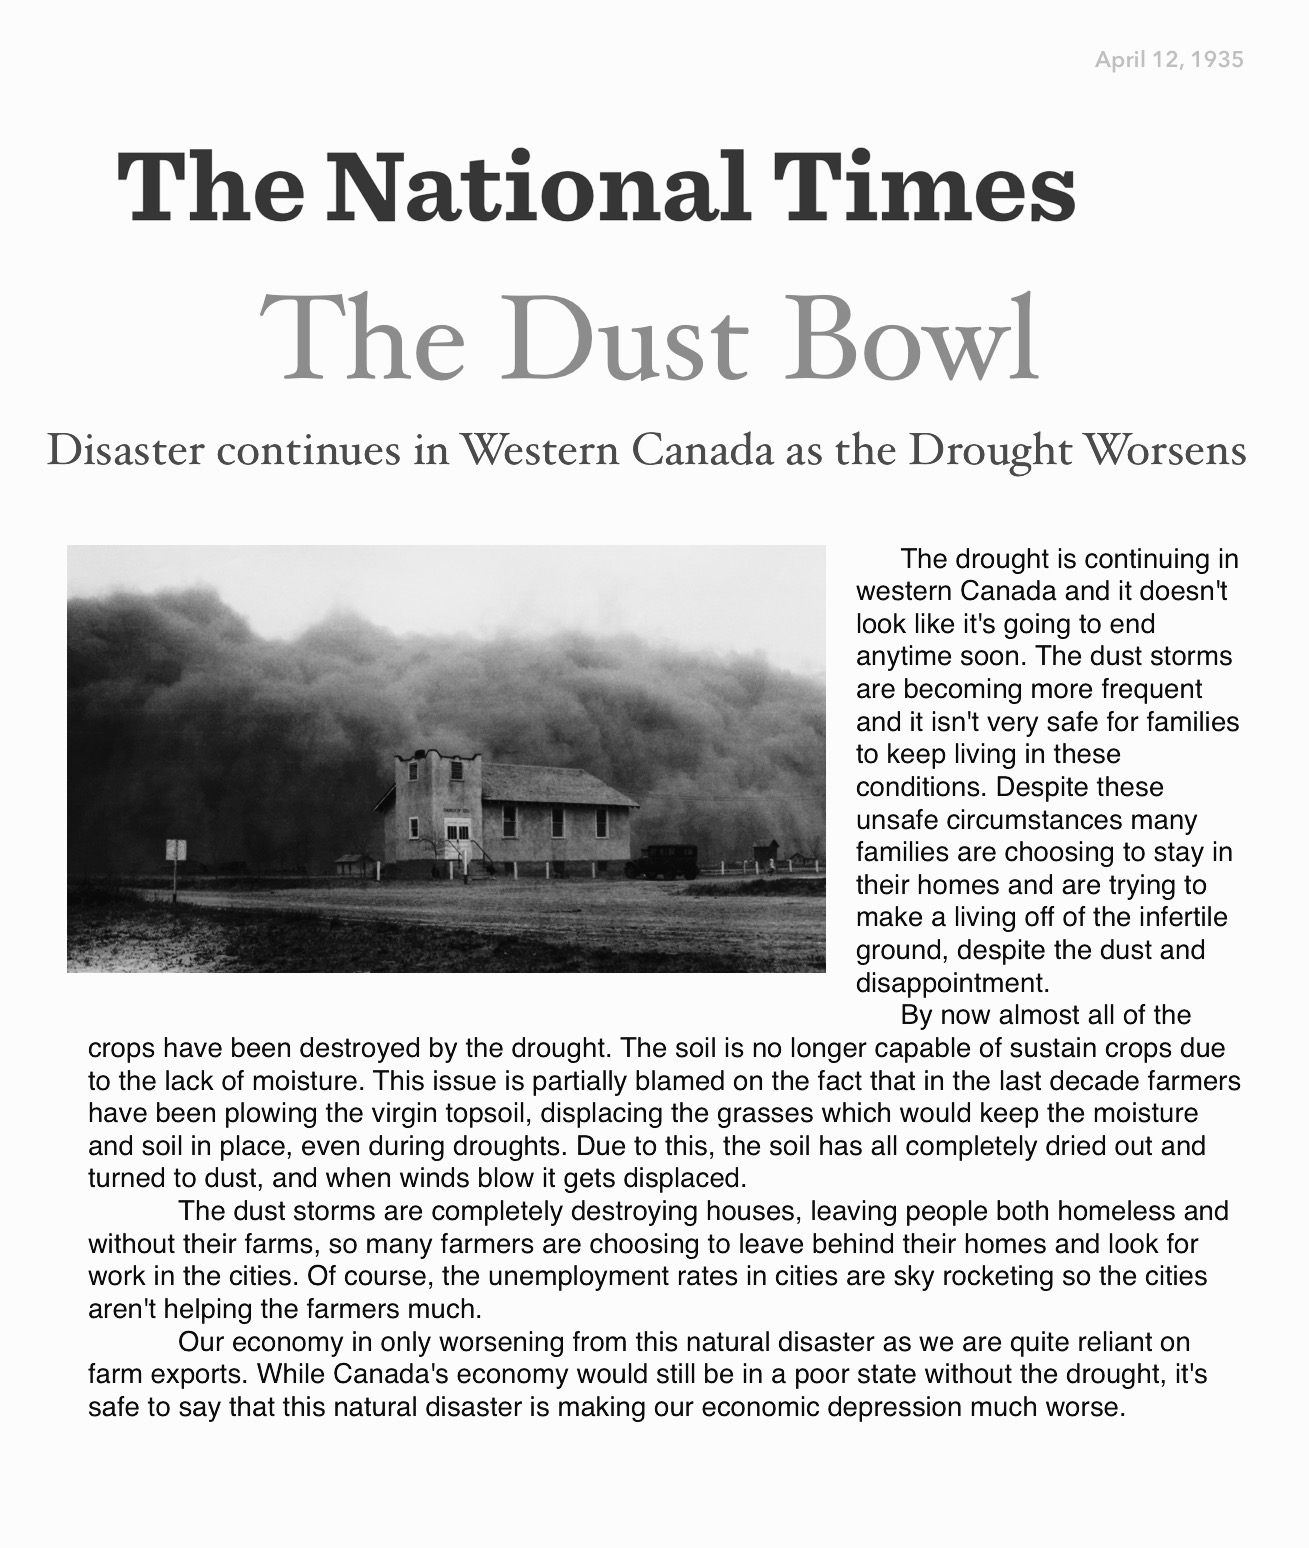 the dust bowl 2 essay The dust bowl was the result of the worst drought in the history of the united states in 1935 the wind blew for 27 nights and days and people began to die of suffocation and pneumonia caused from the dust.